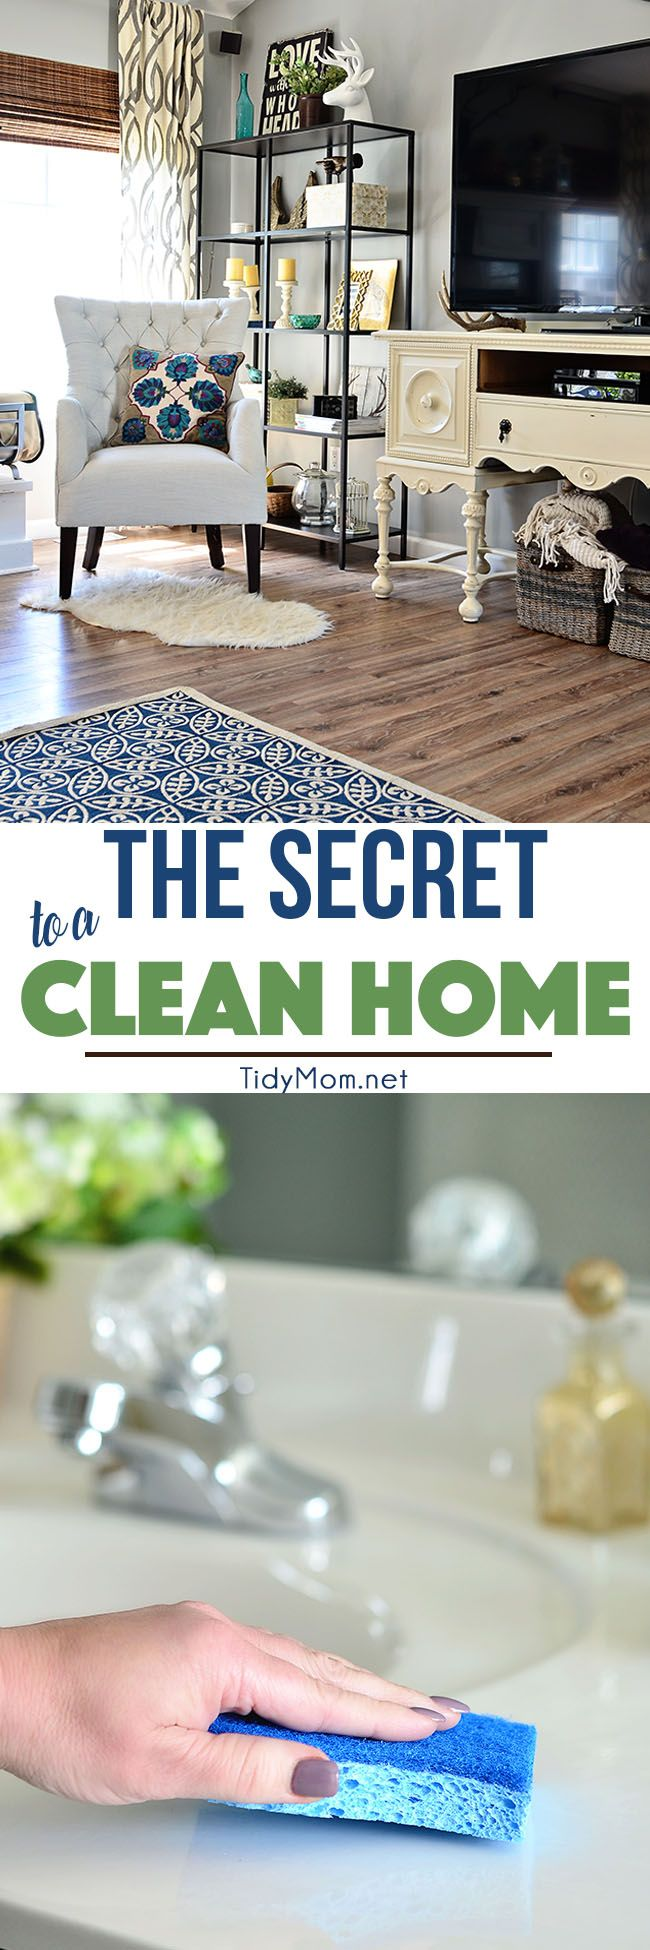 The key to good a spring cleaning and living in a cleaner house actually starts with clearing the clutter in your home.  The more organized your home is, the easier it will be to keep clean. The Secret to a Clean Home at TidyMom.net